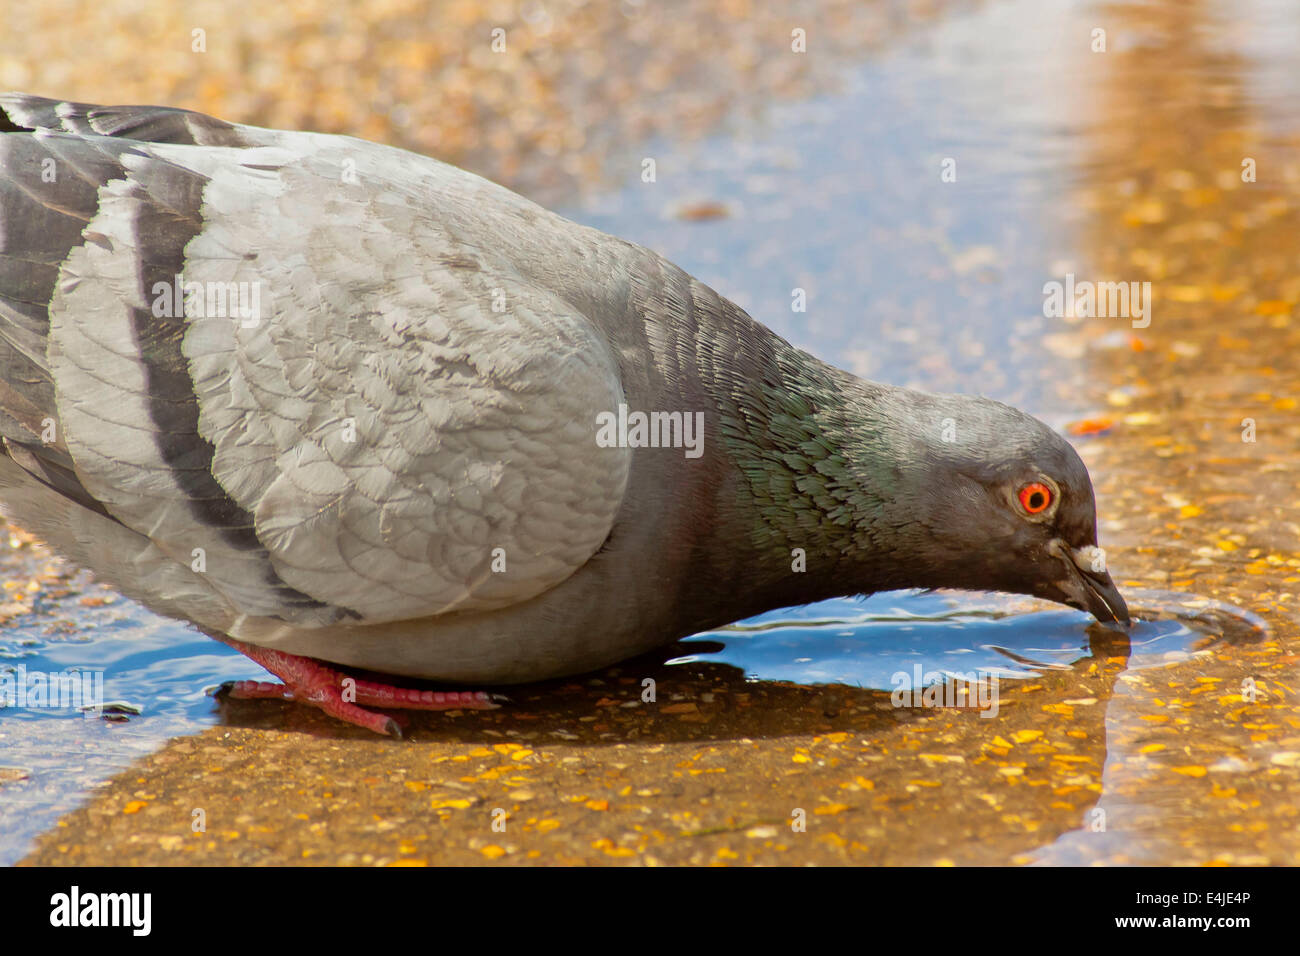 Pigeon drinking water - Stock Image